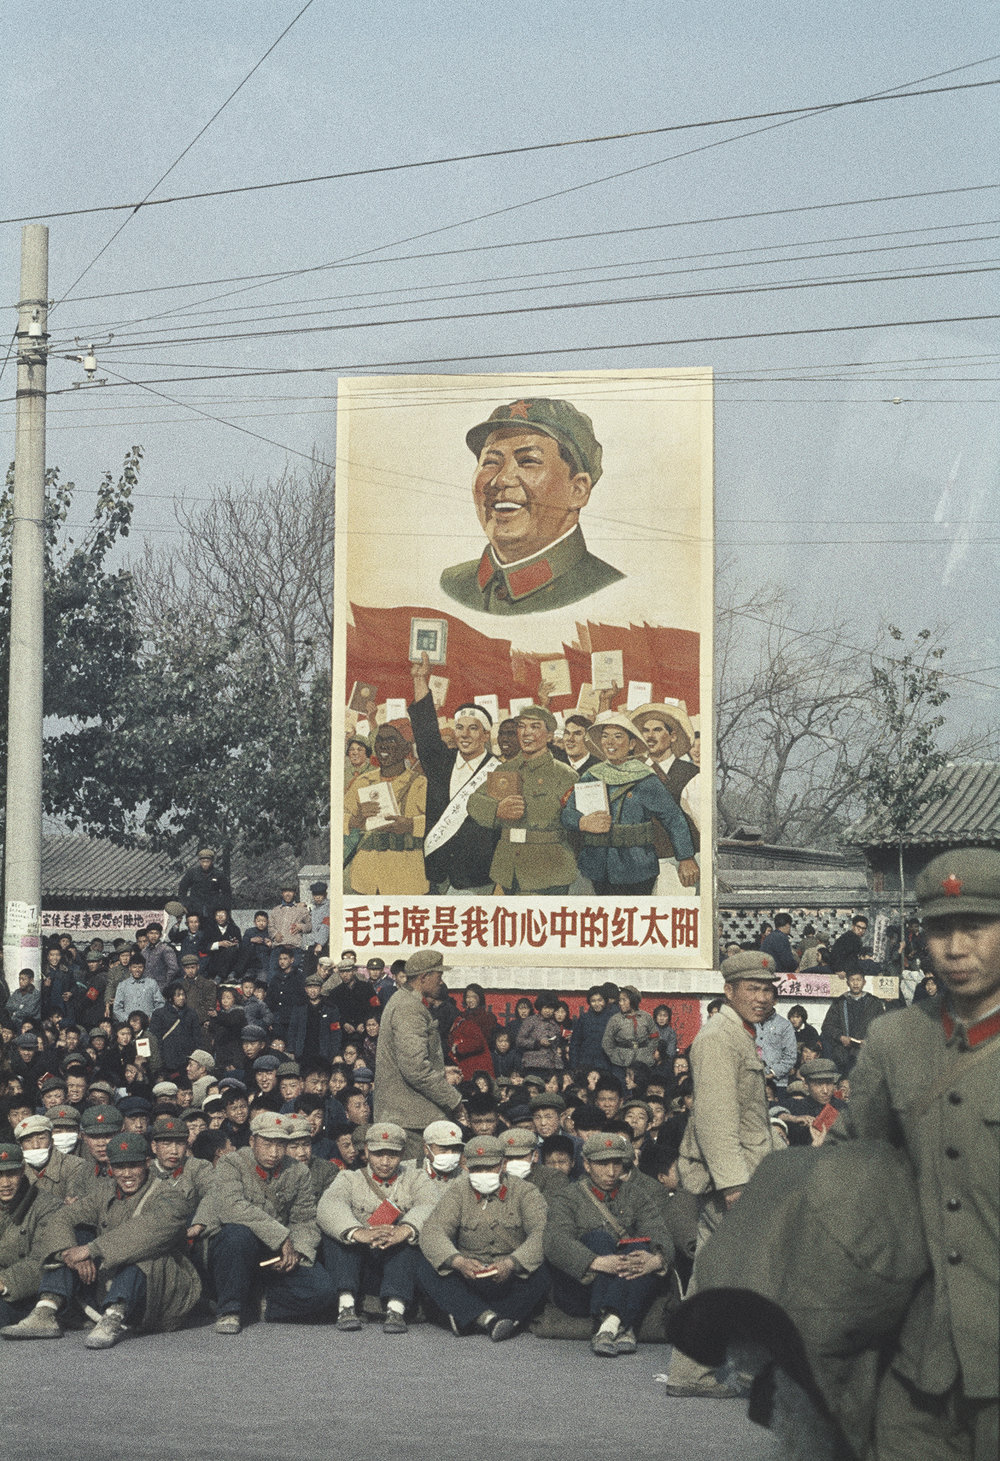 SOLANGE BRAND,  Untitled  (a demonstration), Beijing, China, November, 1966